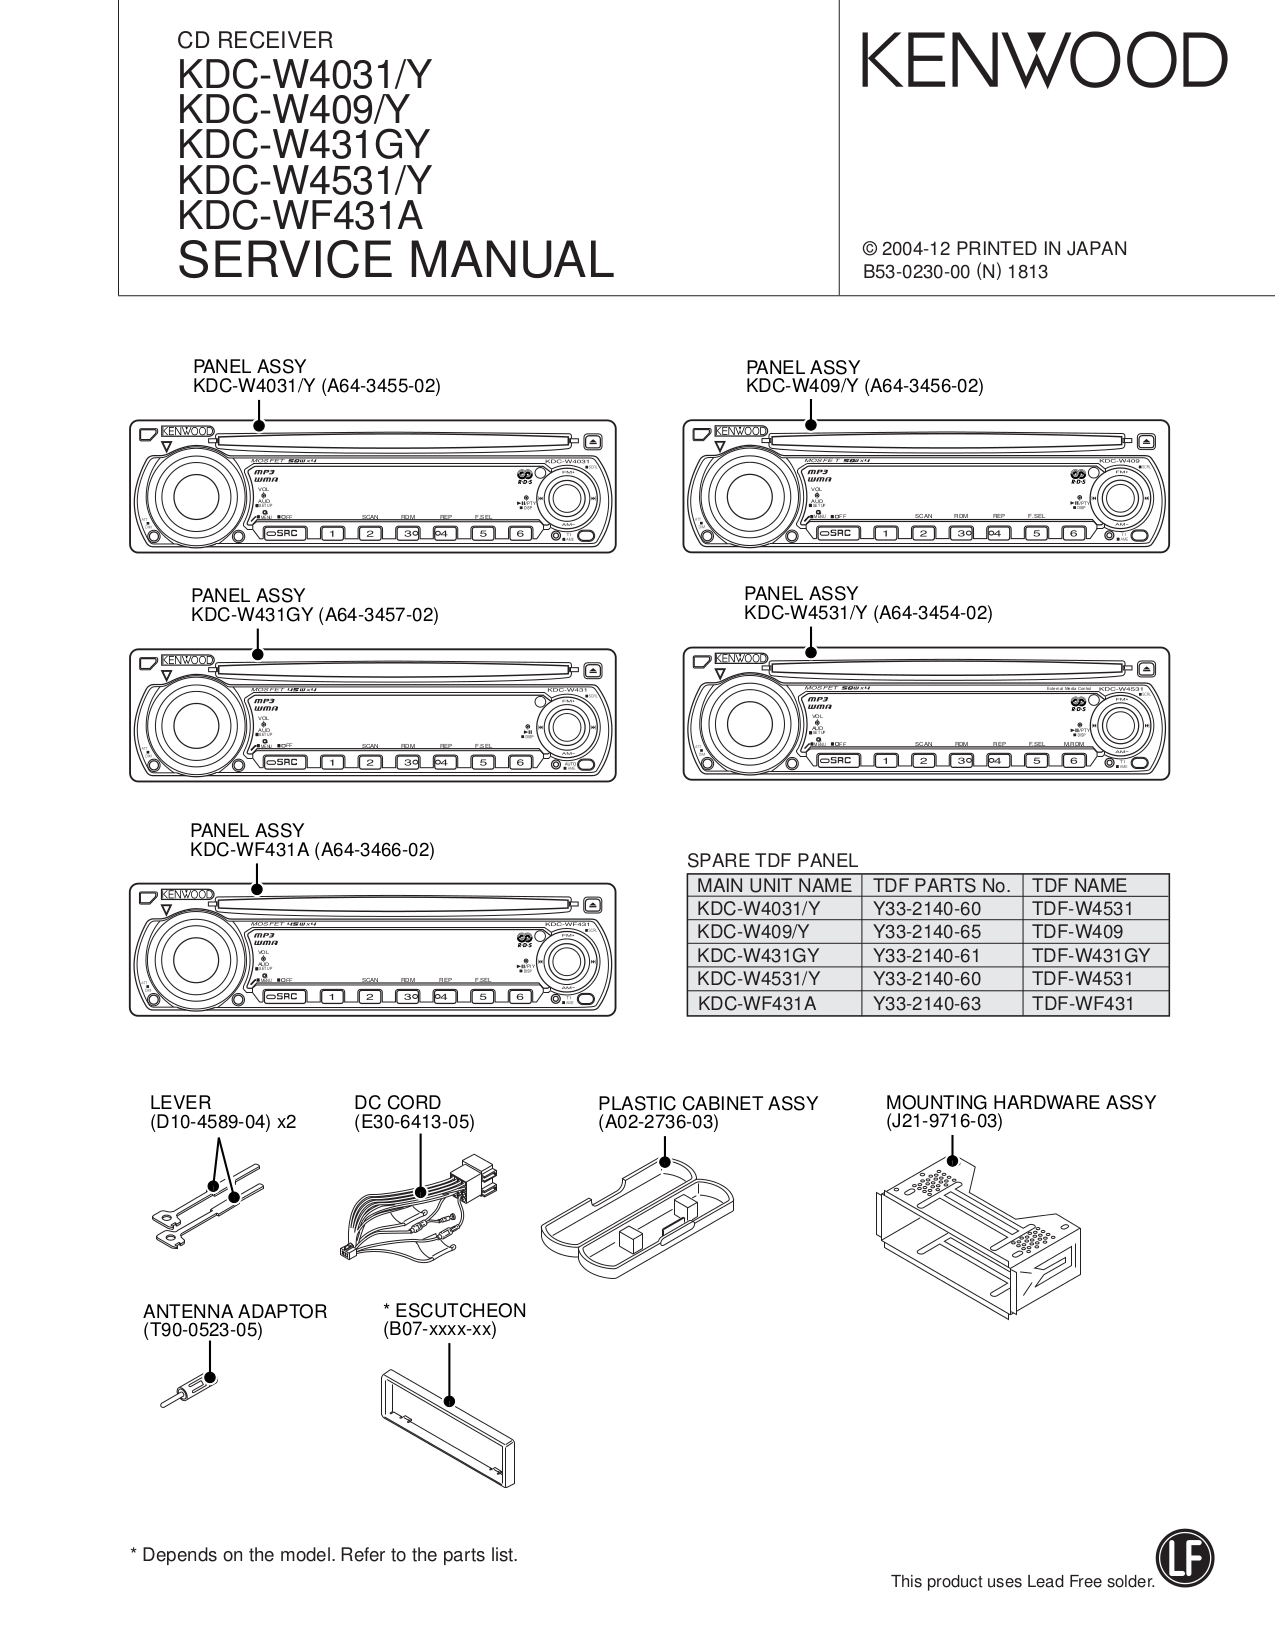 KDC W4031_W409_W431GY_W4531_WF431A.pdf 0 kenwood kdc 135 wiring diagram kenwood harness diagram \u2022 wiring Kenwood DDX470 Wiring Harness Diagram at panicattacktreatment.co